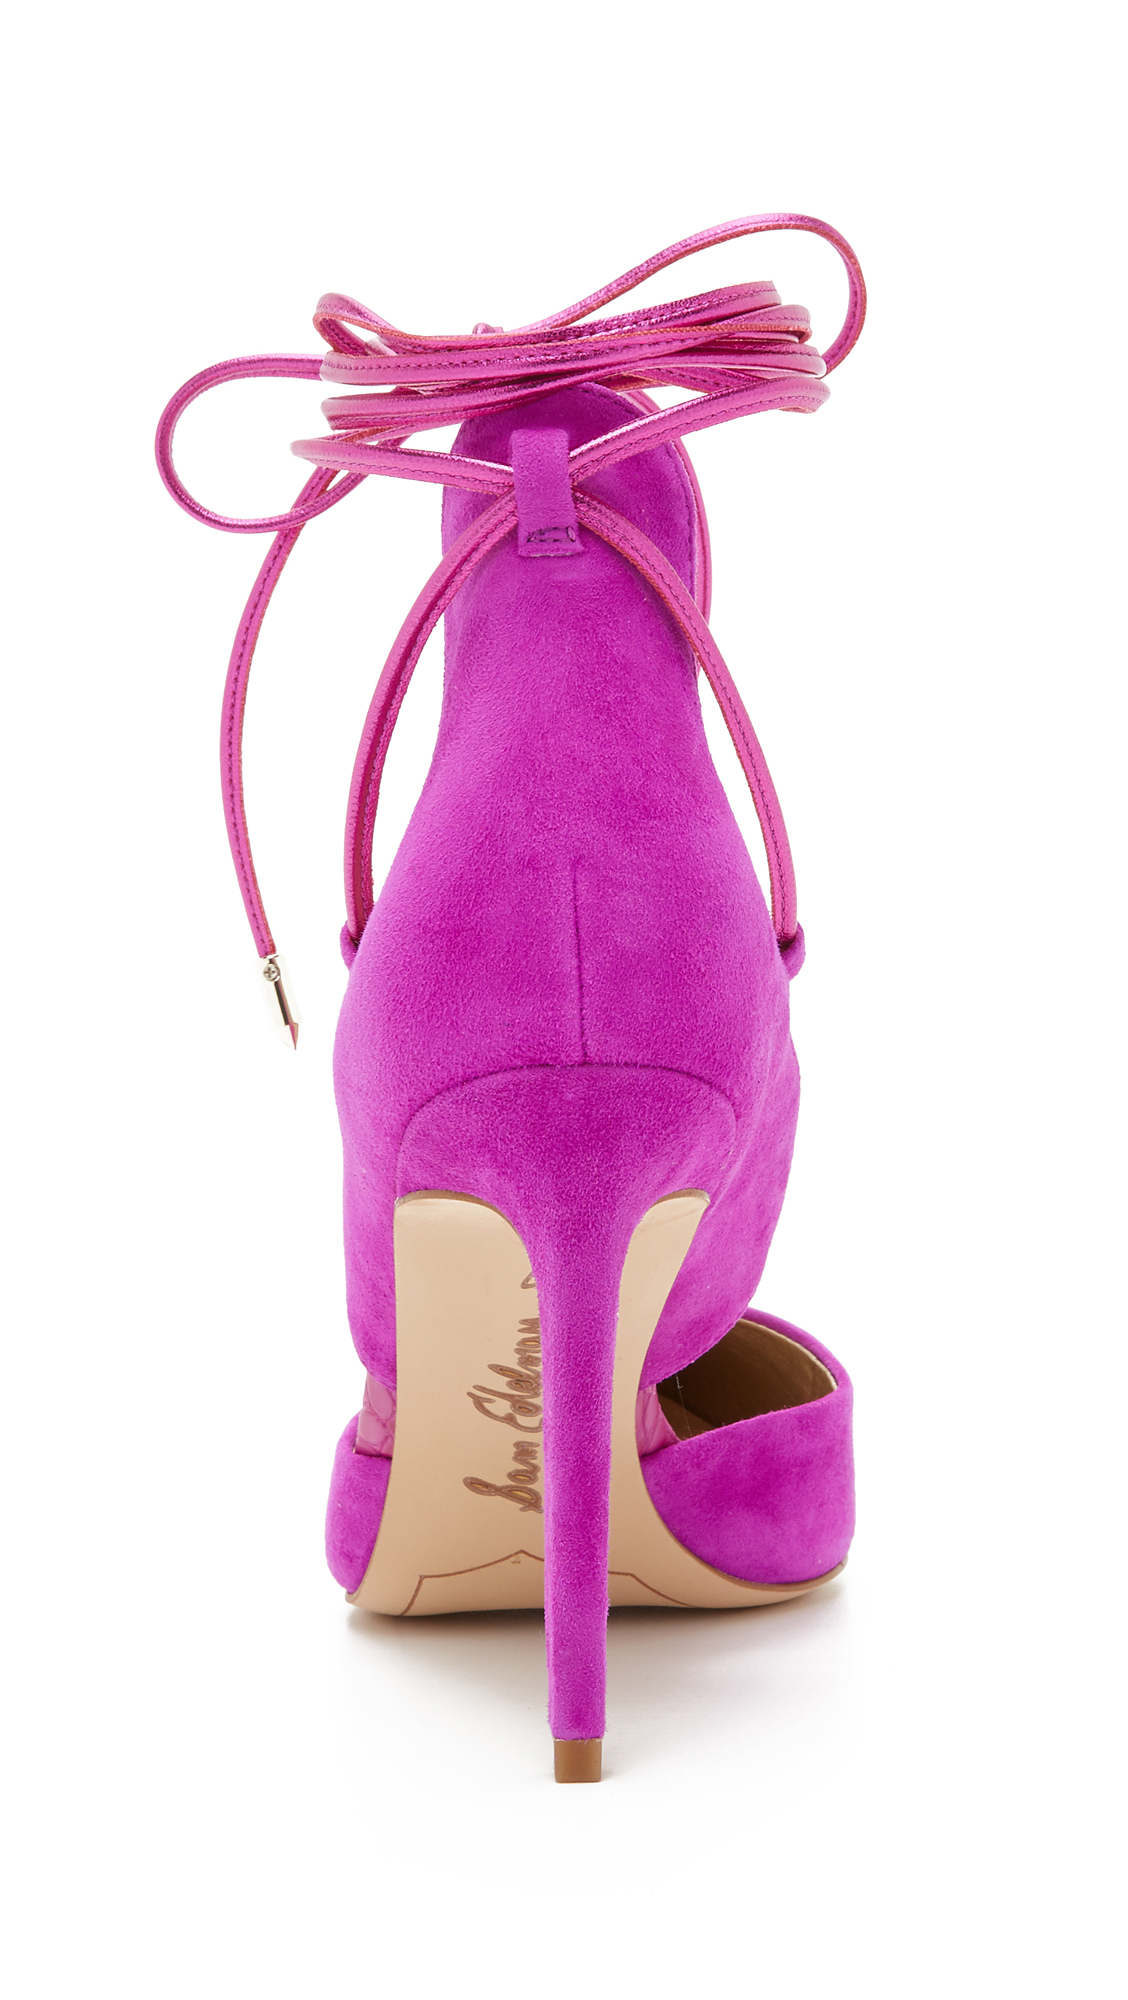 dd46cece52c0e Gallery. Previously sold at  Shopbop · Women s Lace Up High Heels ...